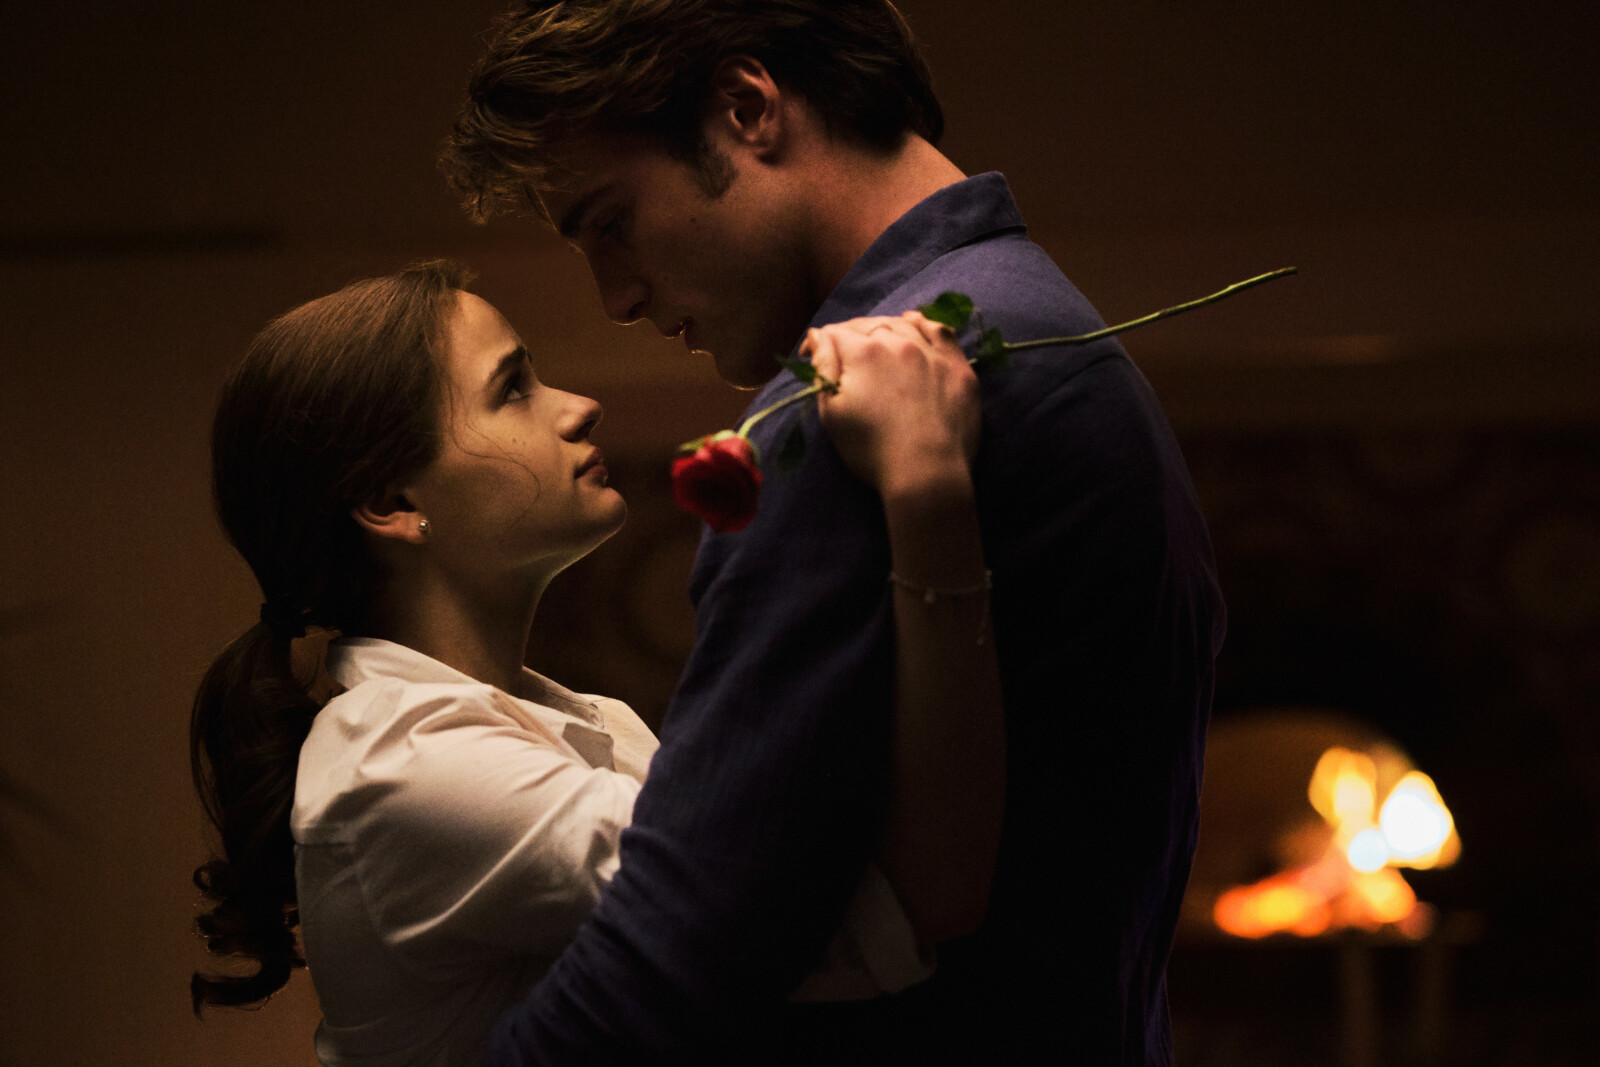 THE KISSING BOOTH 3 (2021) Joey King as Elle and Jacob Elordi as Noah. Cr: Marcos Cruz/NETFLIX